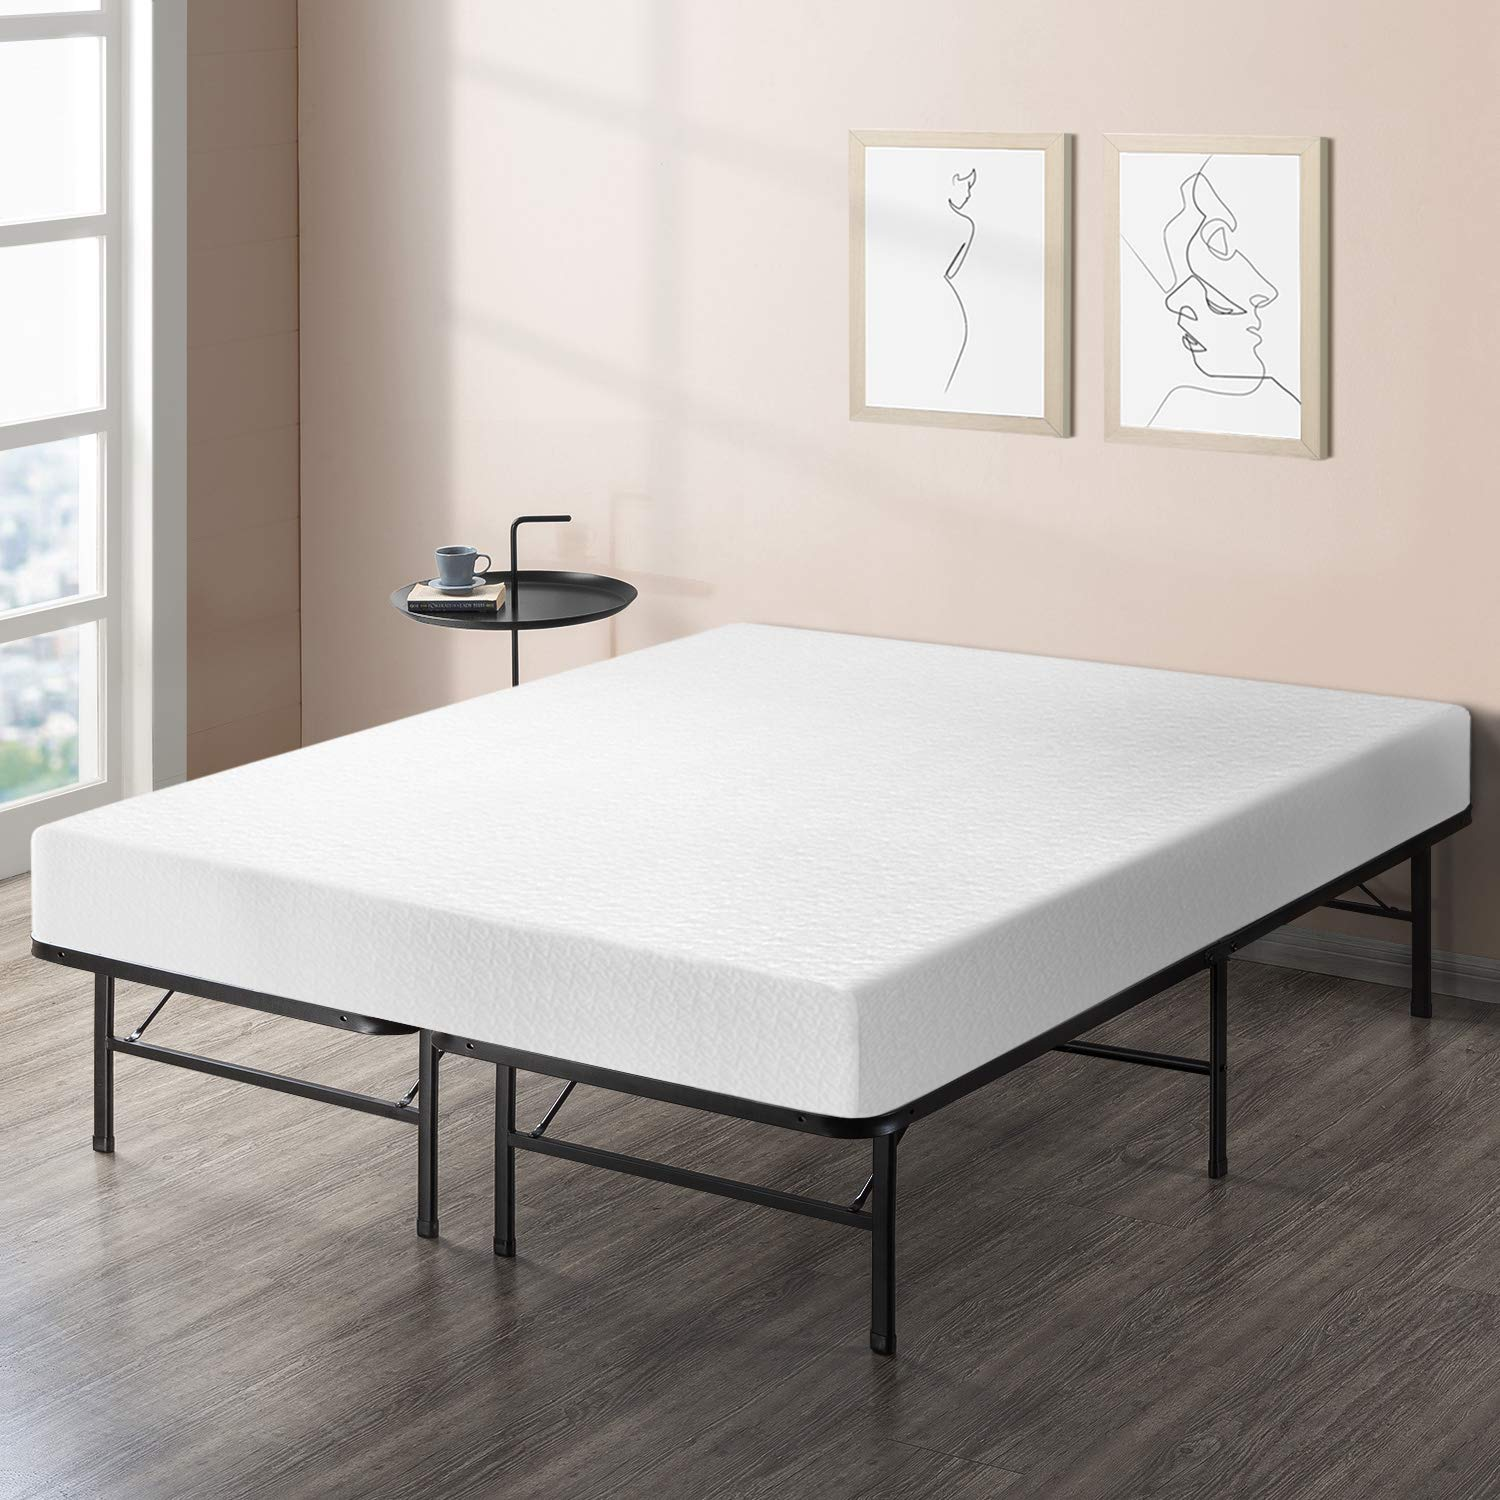 Best Price Mattress 8'' Comfort Premium Memory Foam Mattress and Bed Frame Set, Full by Best Price Mattress